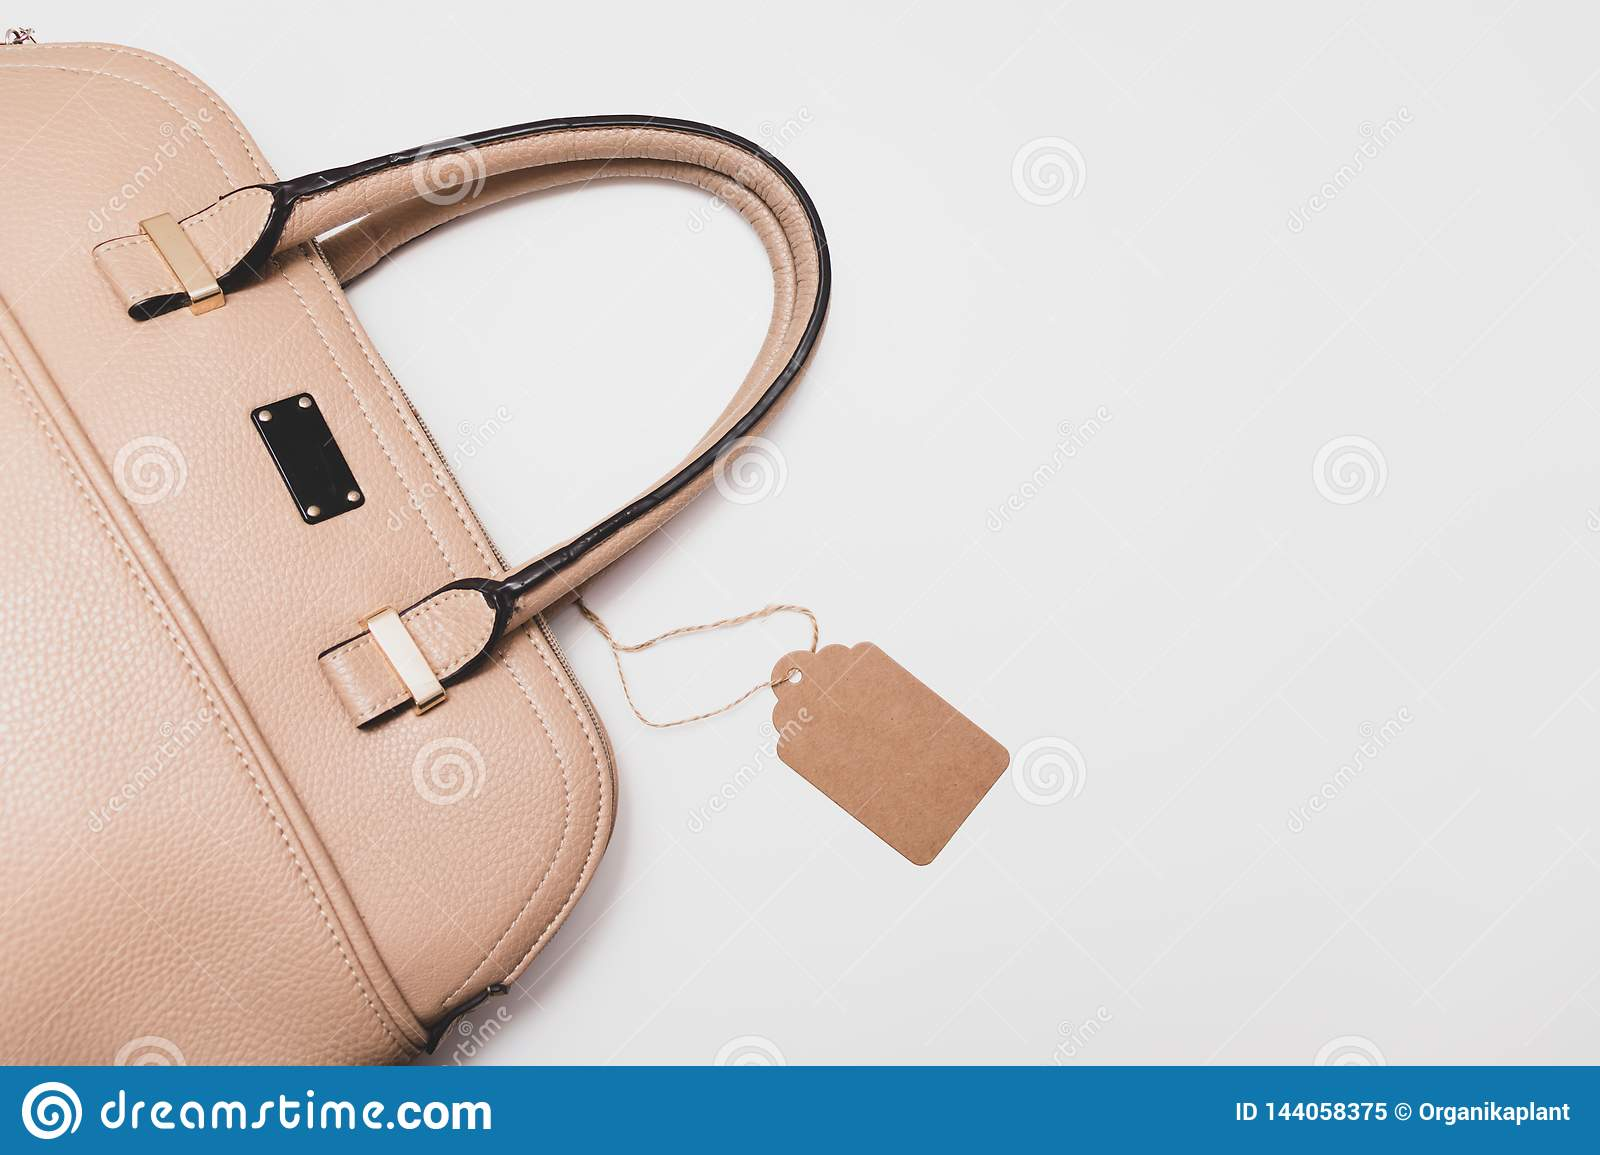 Elegant fashionable formal beige leather handbag for business woman on white background, trendy minimalistic luxury style with